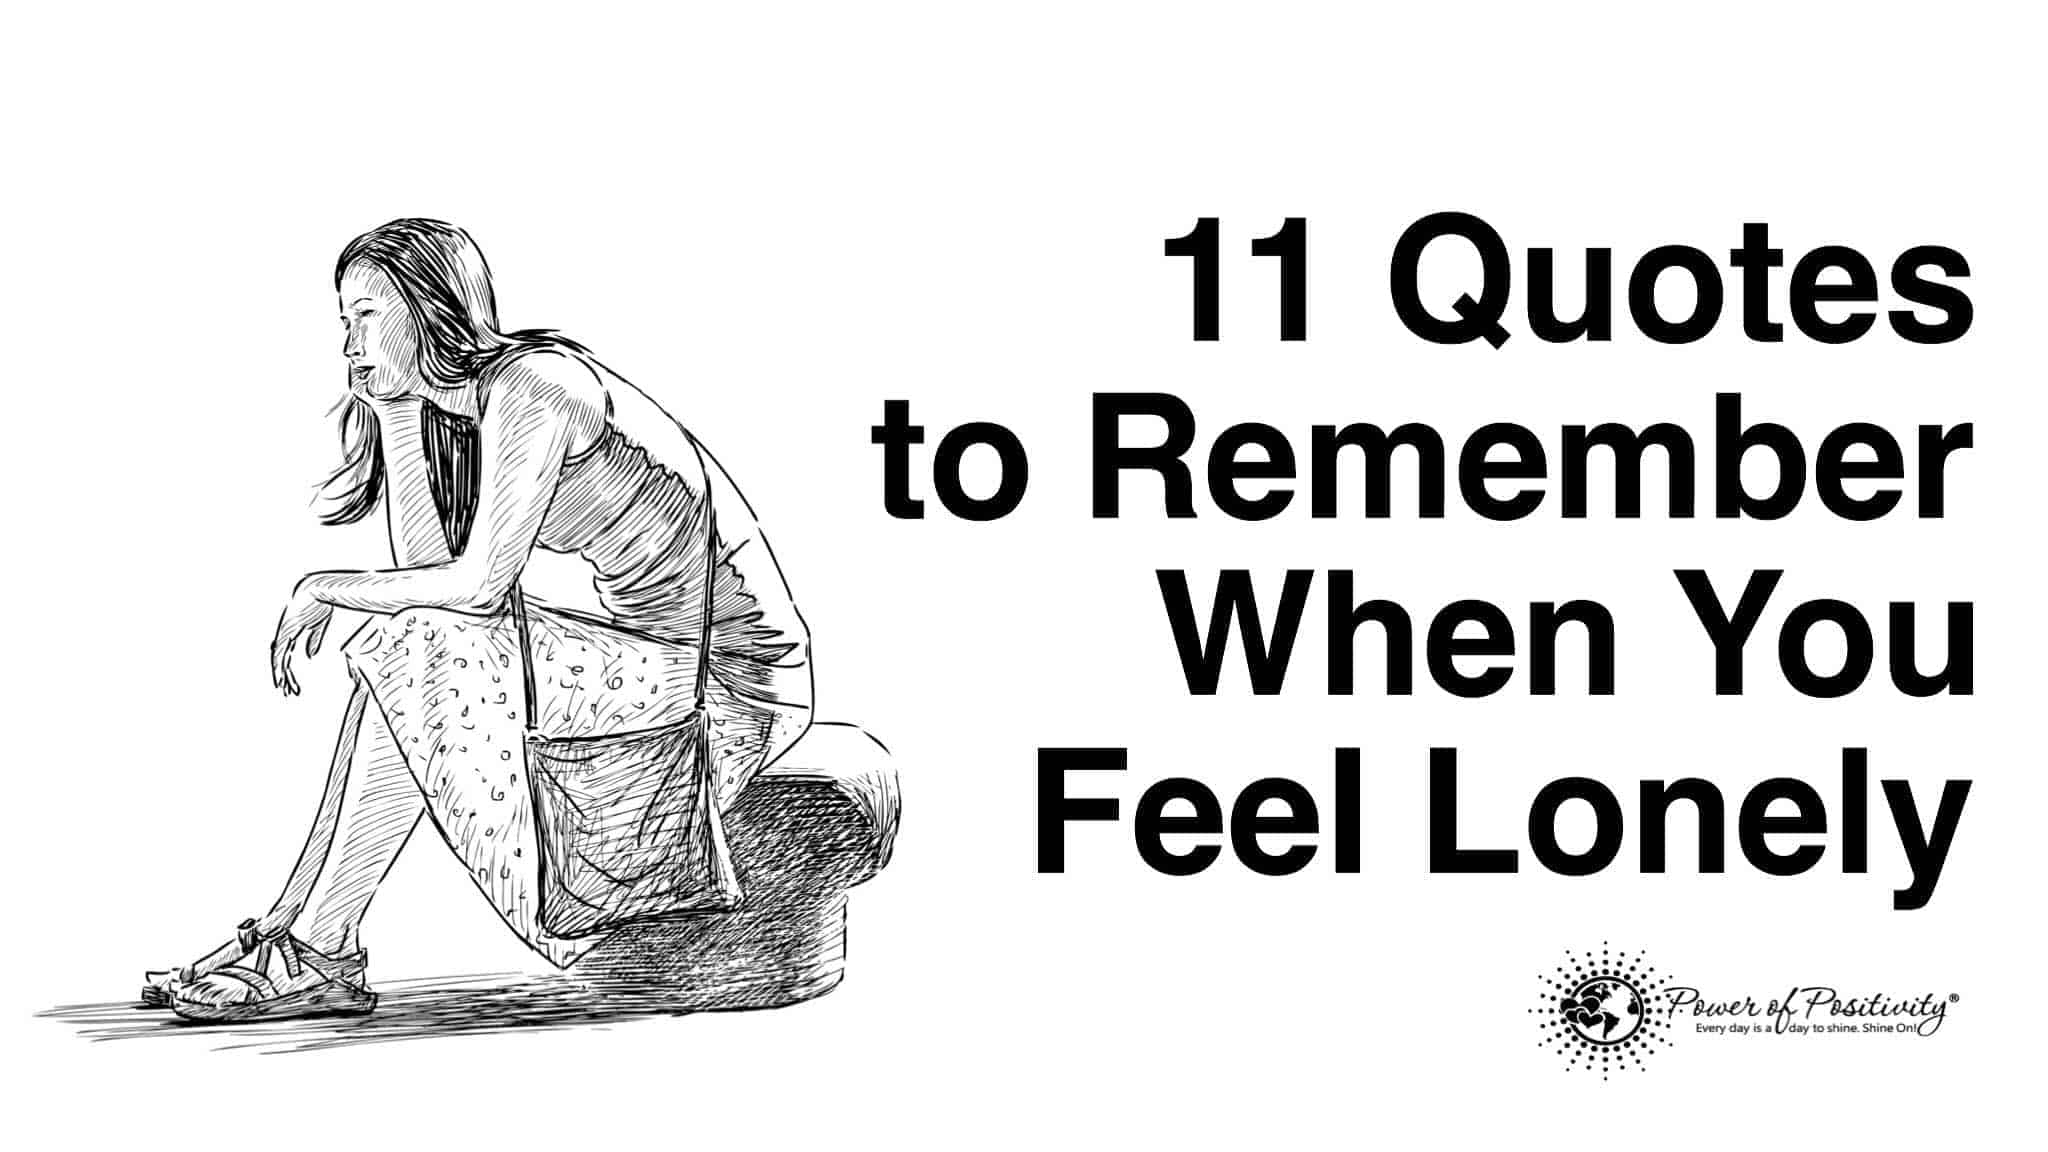 I Feel Alone Quotes 11 Quotes To Remember When You Feel Lonely